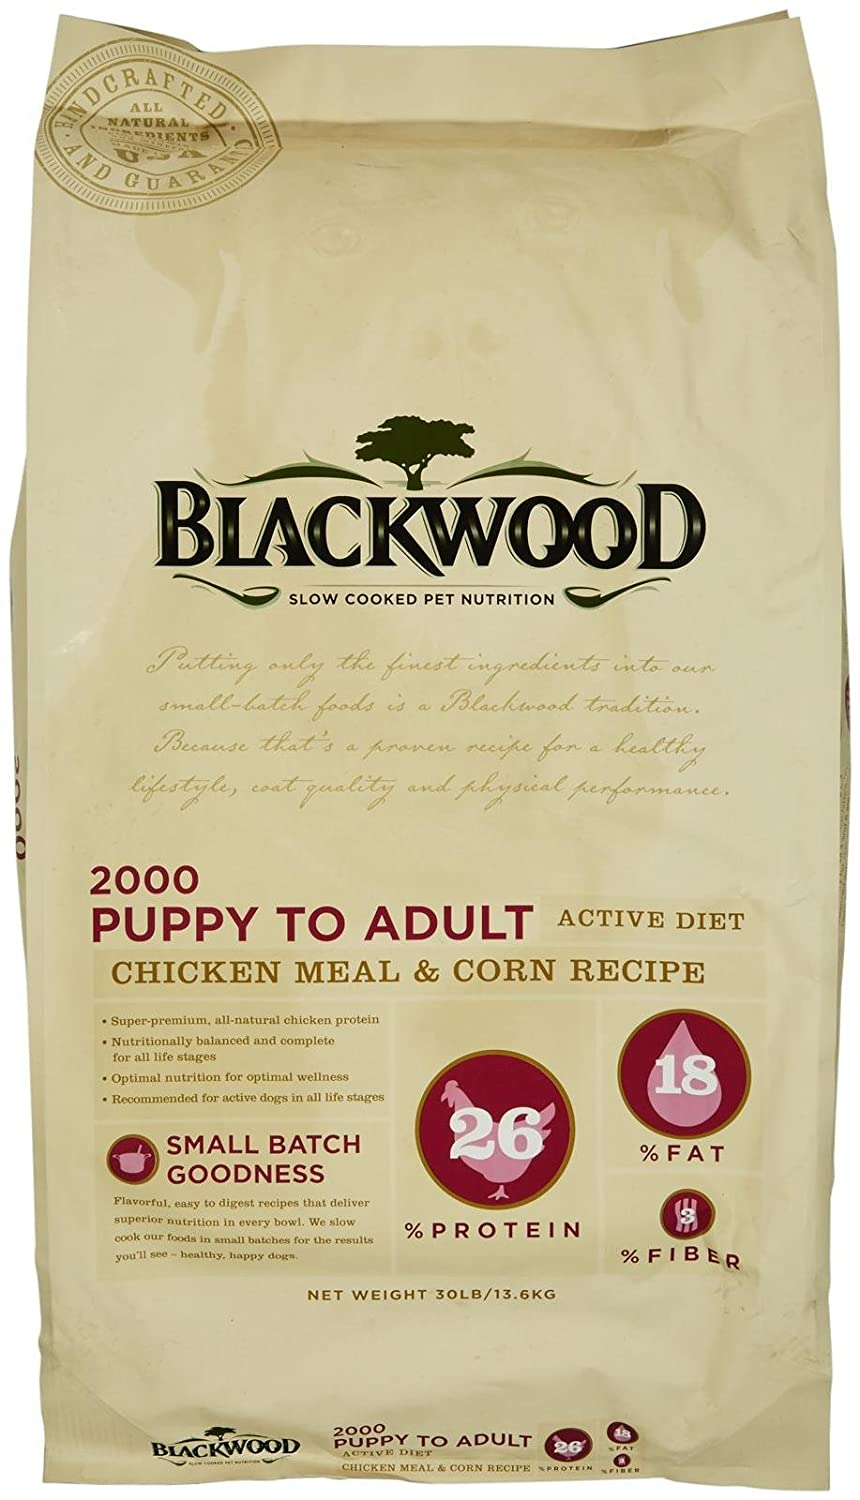 Blackwood 2000 Dog Food - Chicken Meal